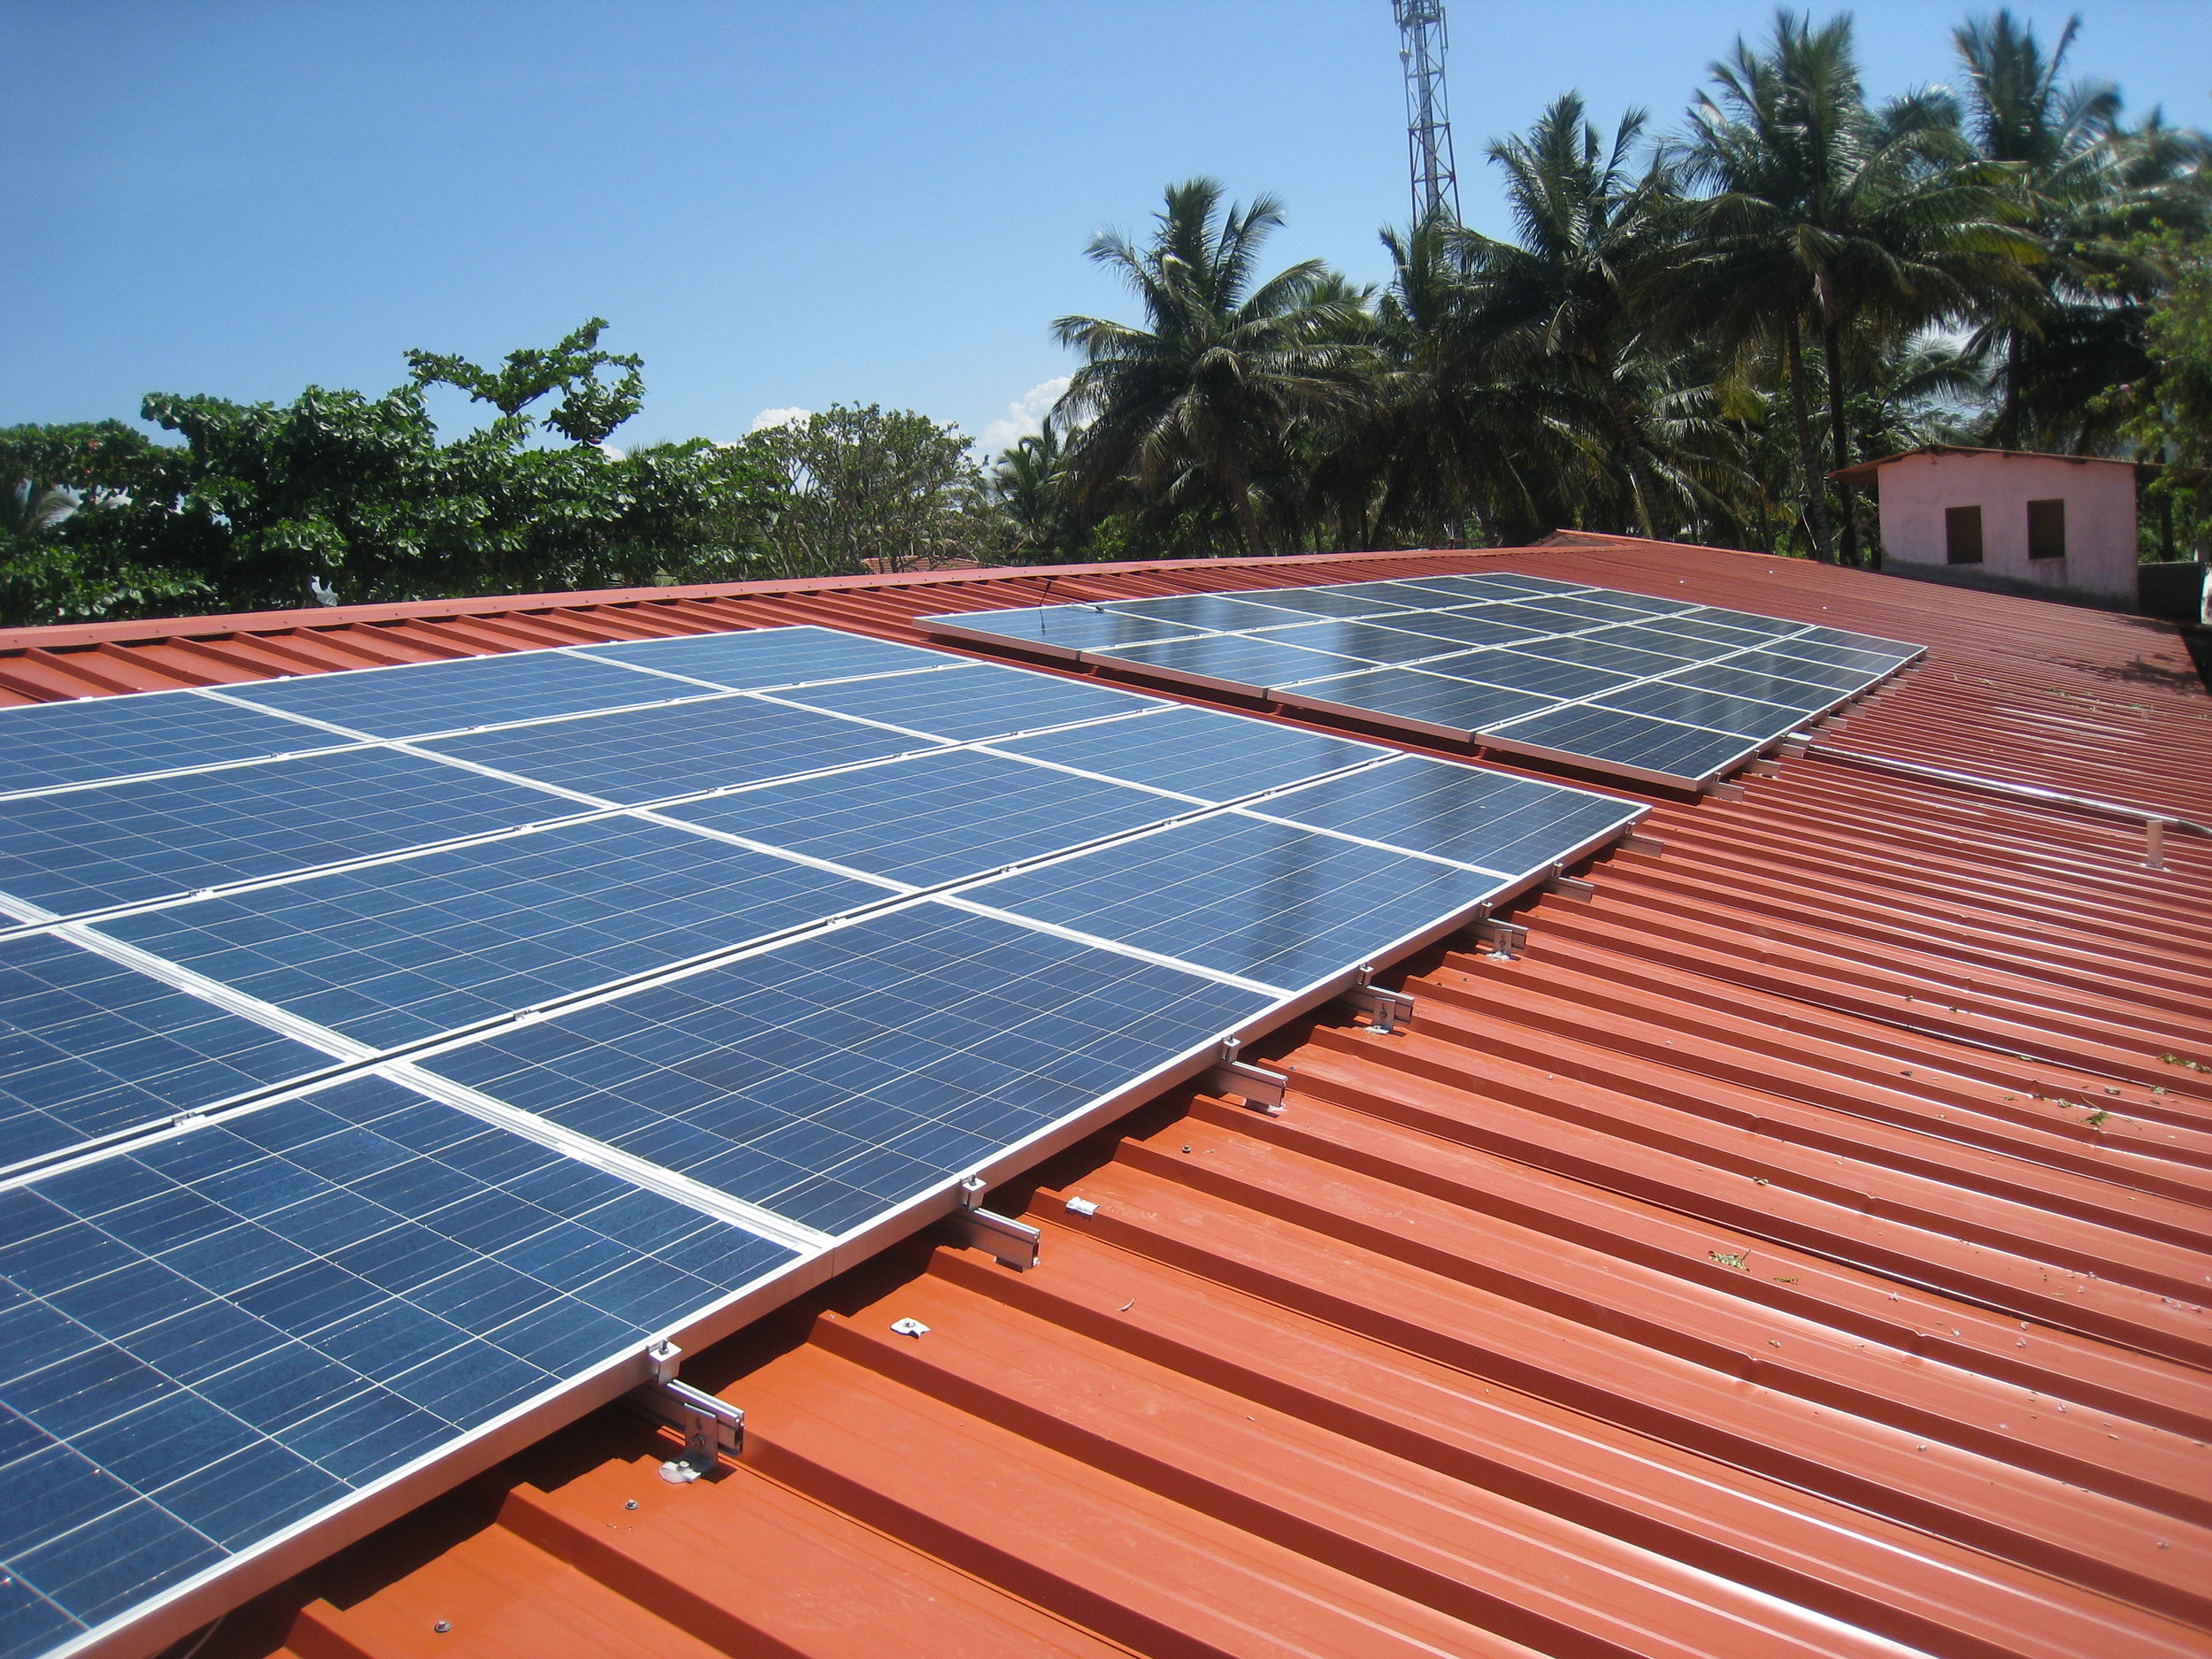 44 Solar Panels on Roof-Donated by SunEdison.jpg